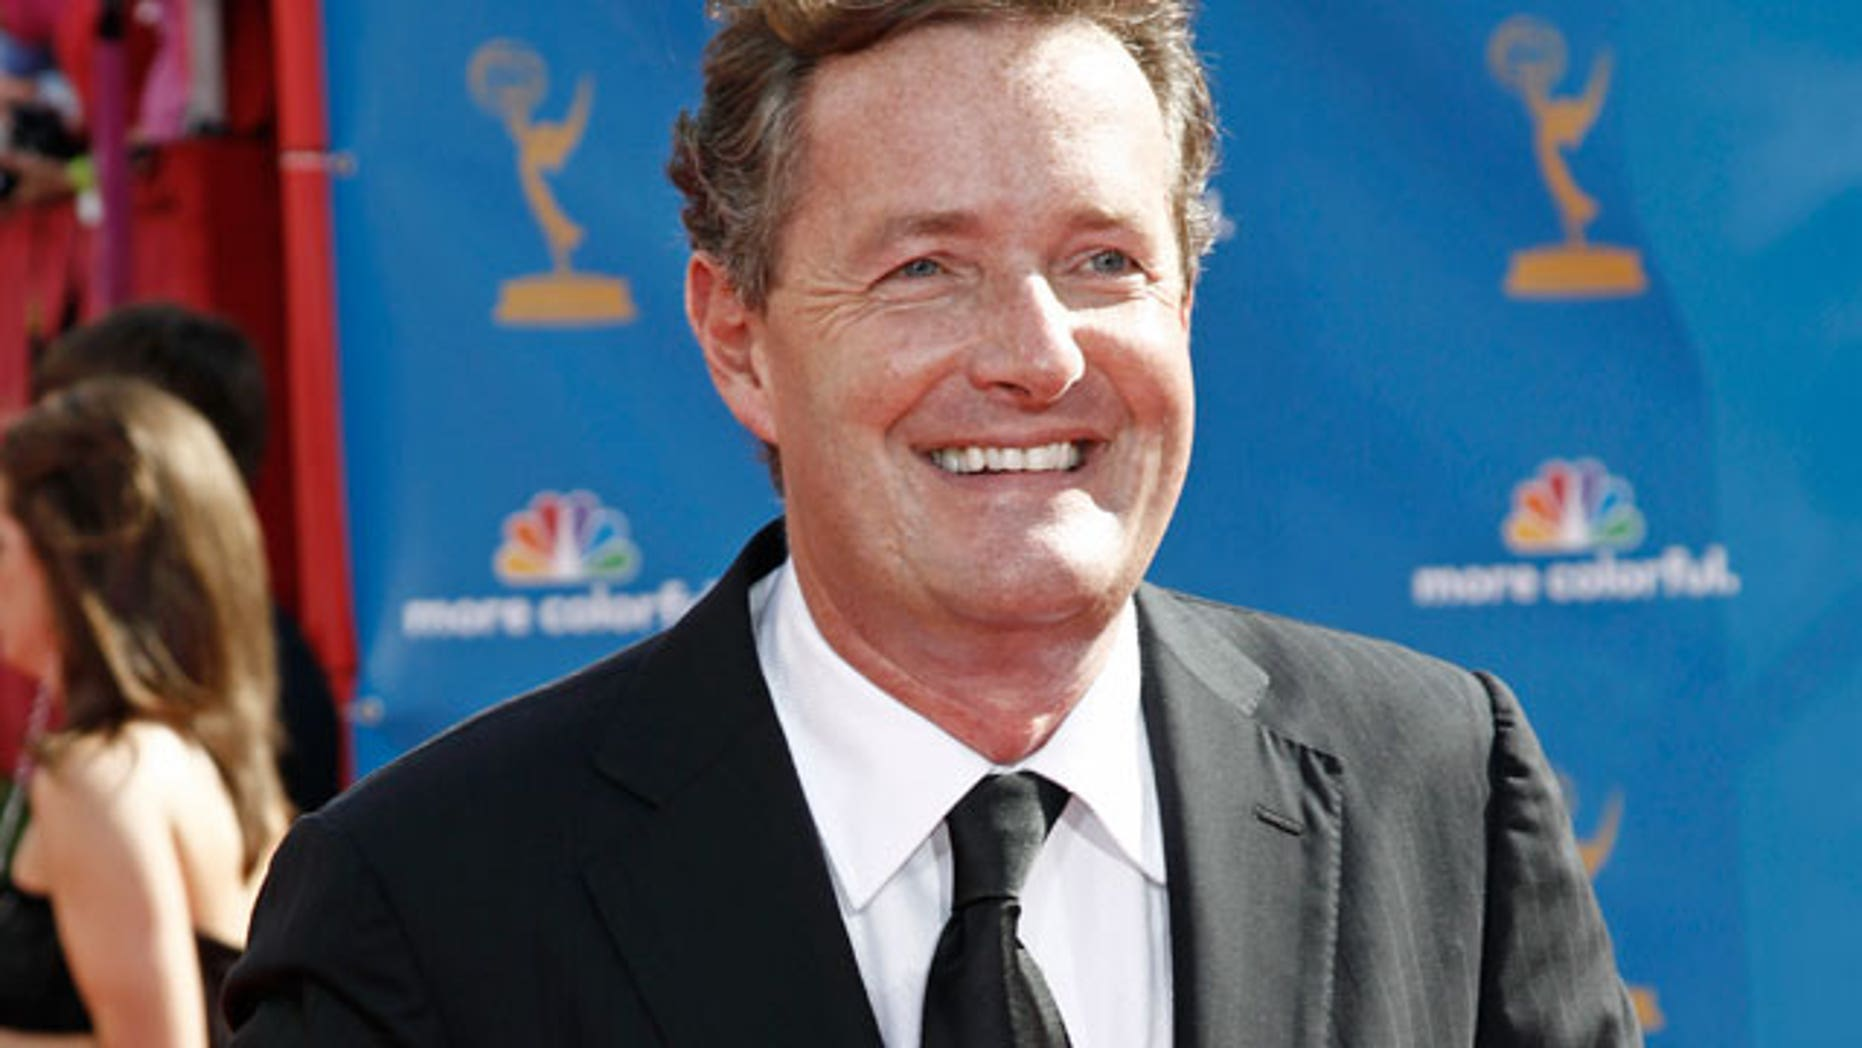 Piers Morgan asked to explain phone hacking comments Piers Morgan asked to explain phone hacking comments new foto